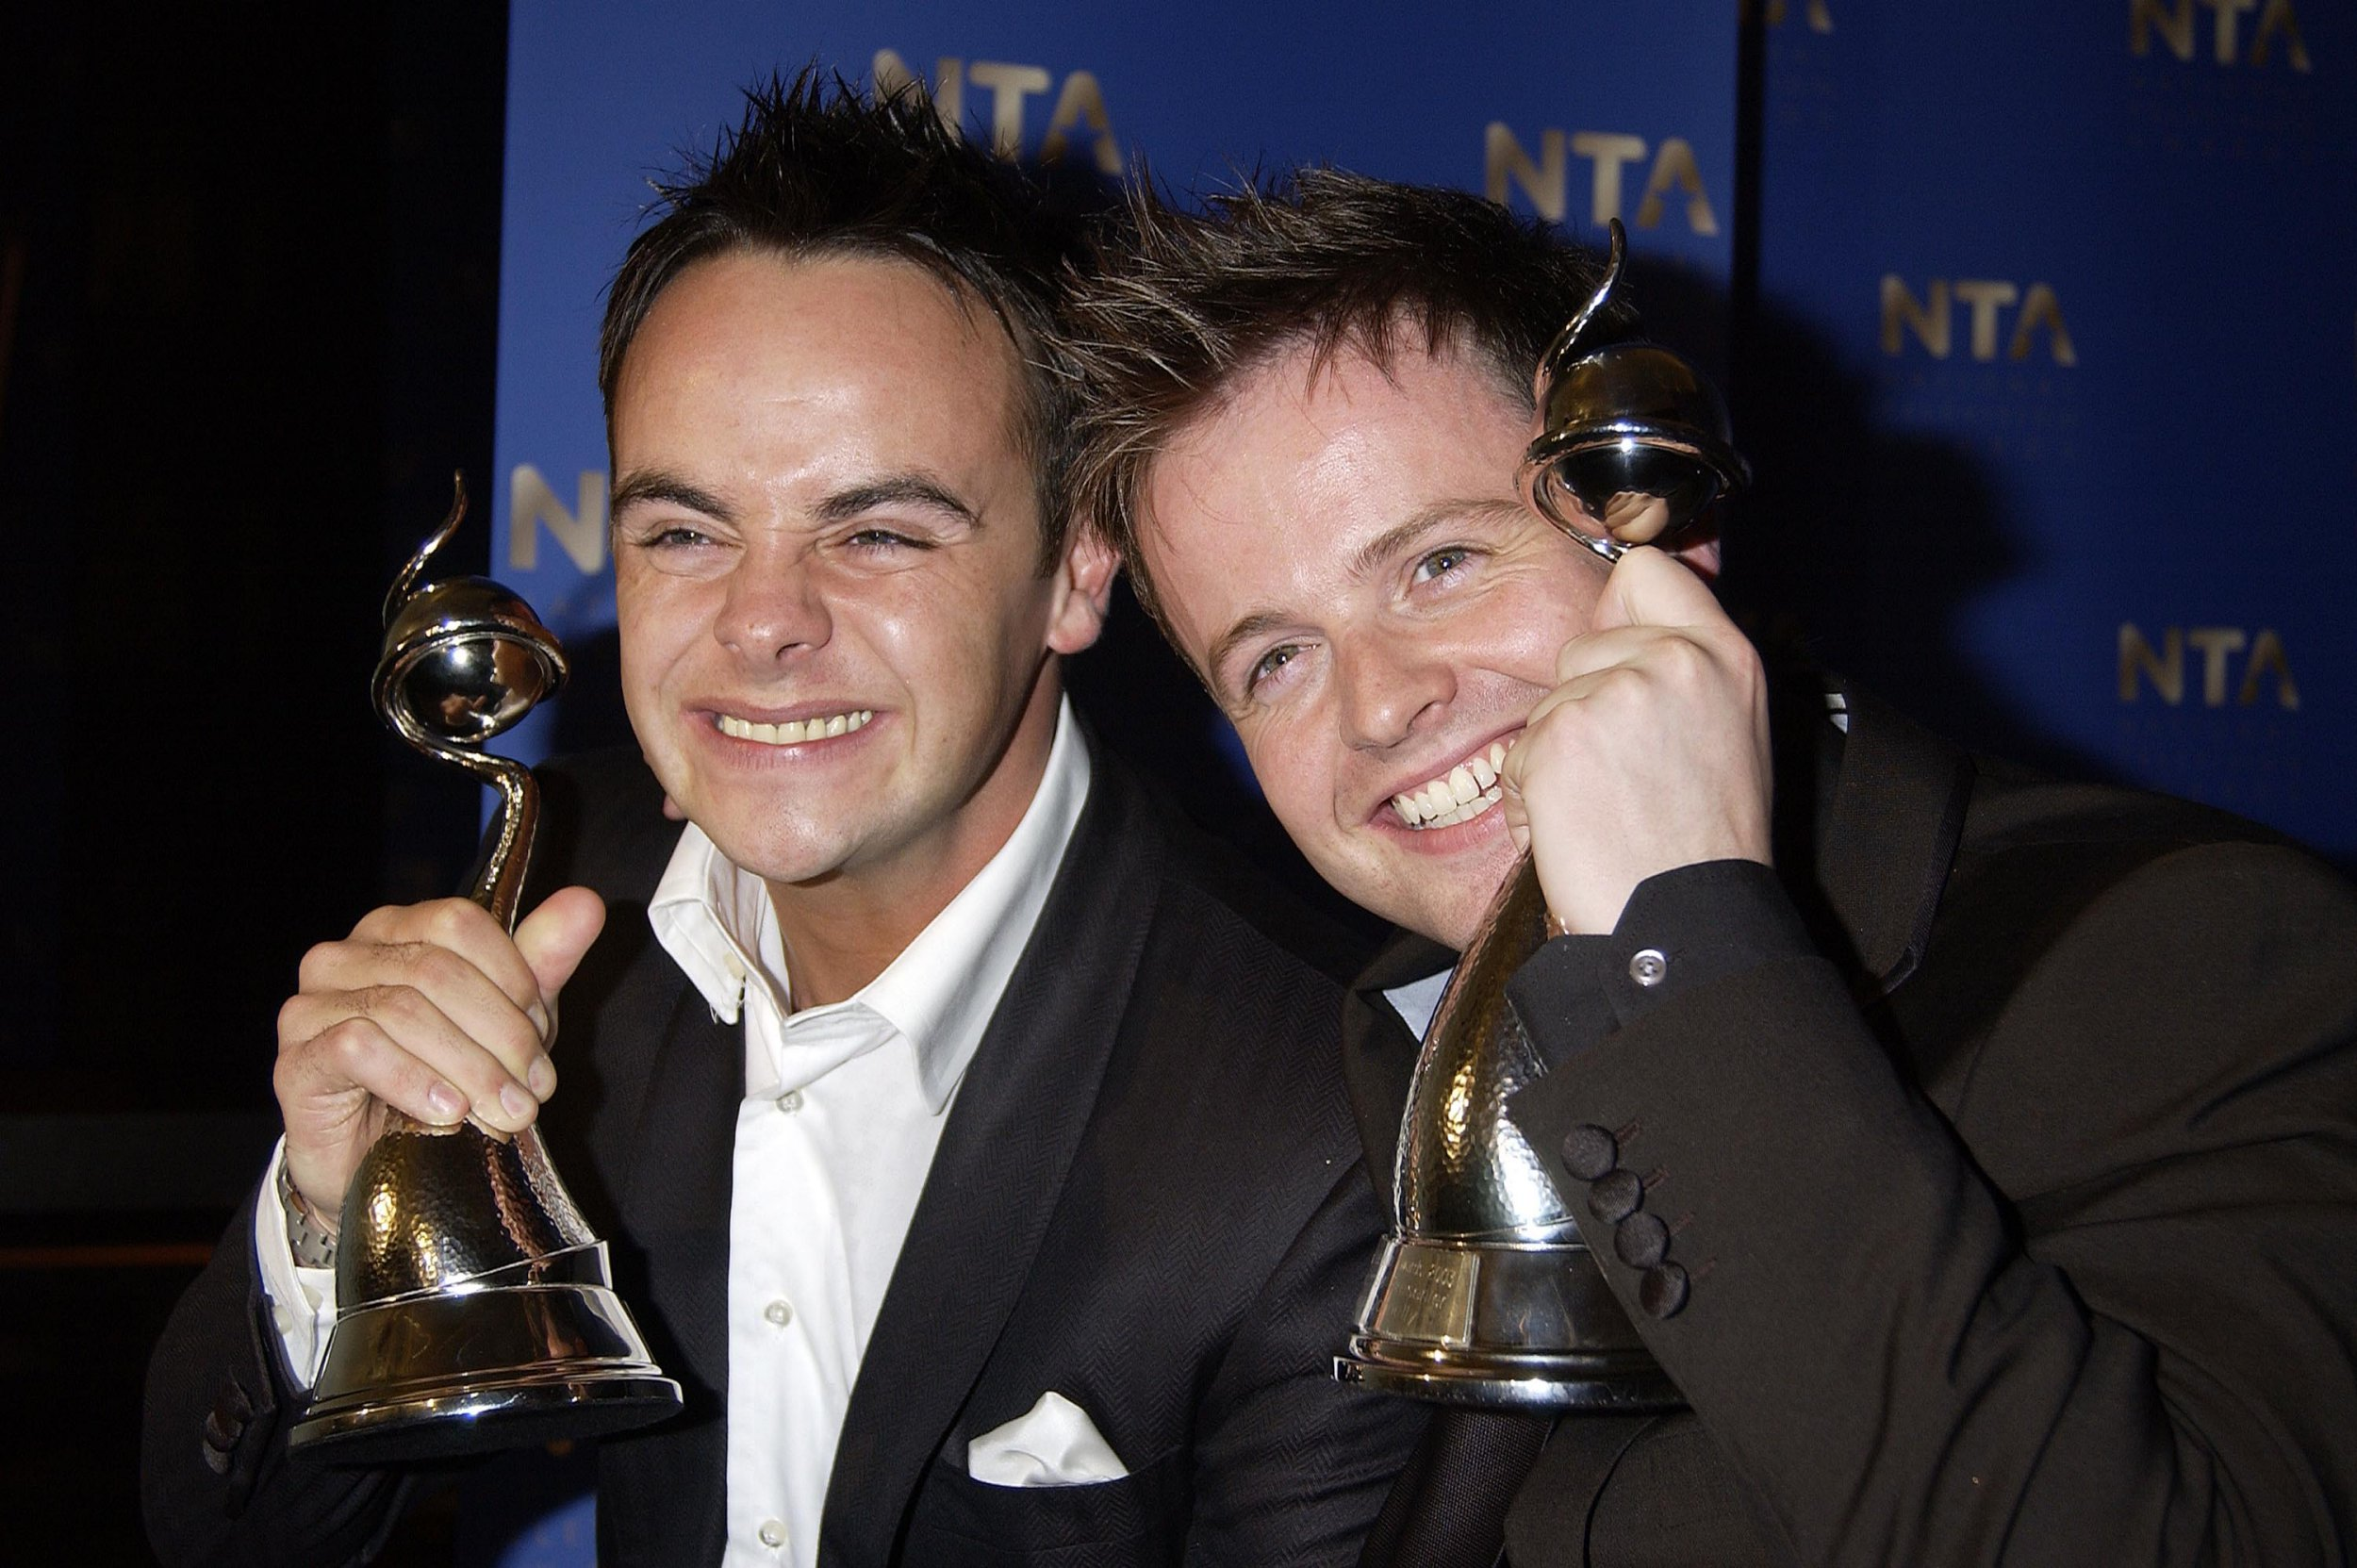 Ant and Dec admit they scrapped idea for 'Hide The Sikh' TV show in unearthed interview